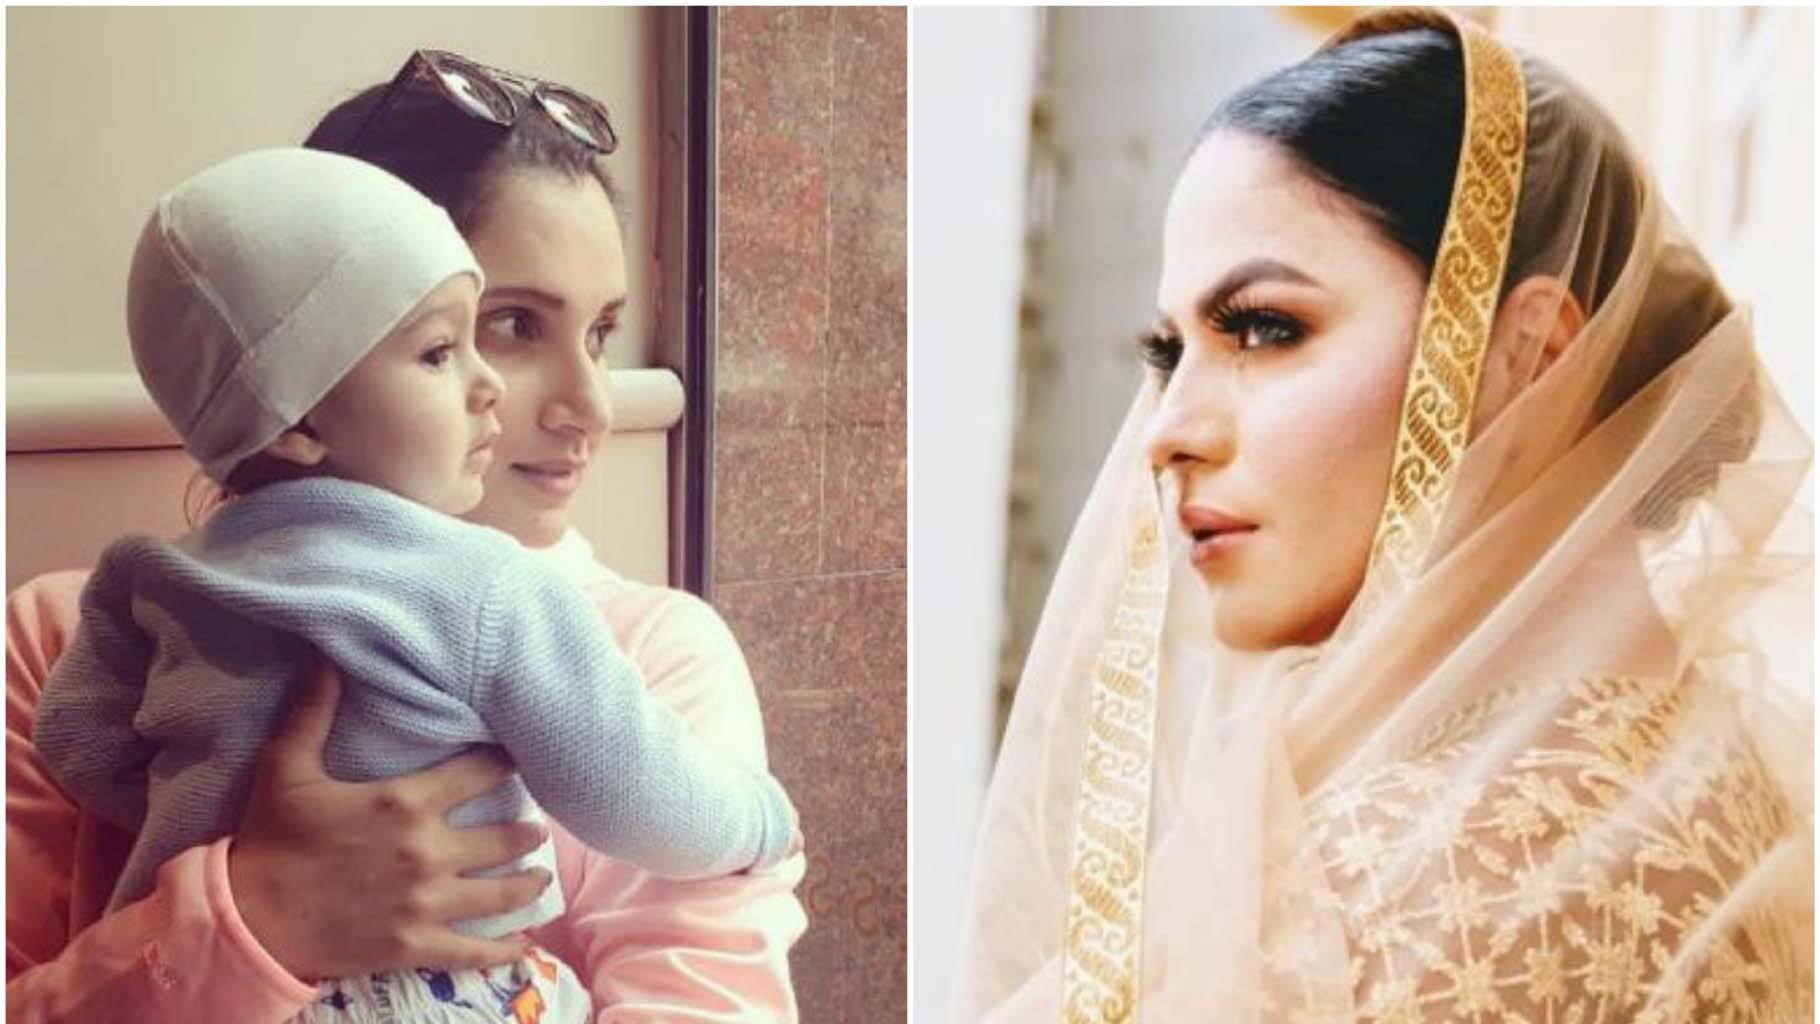 Sania Mirza vs Veena Malik: This is exactly what two women should never do to each other